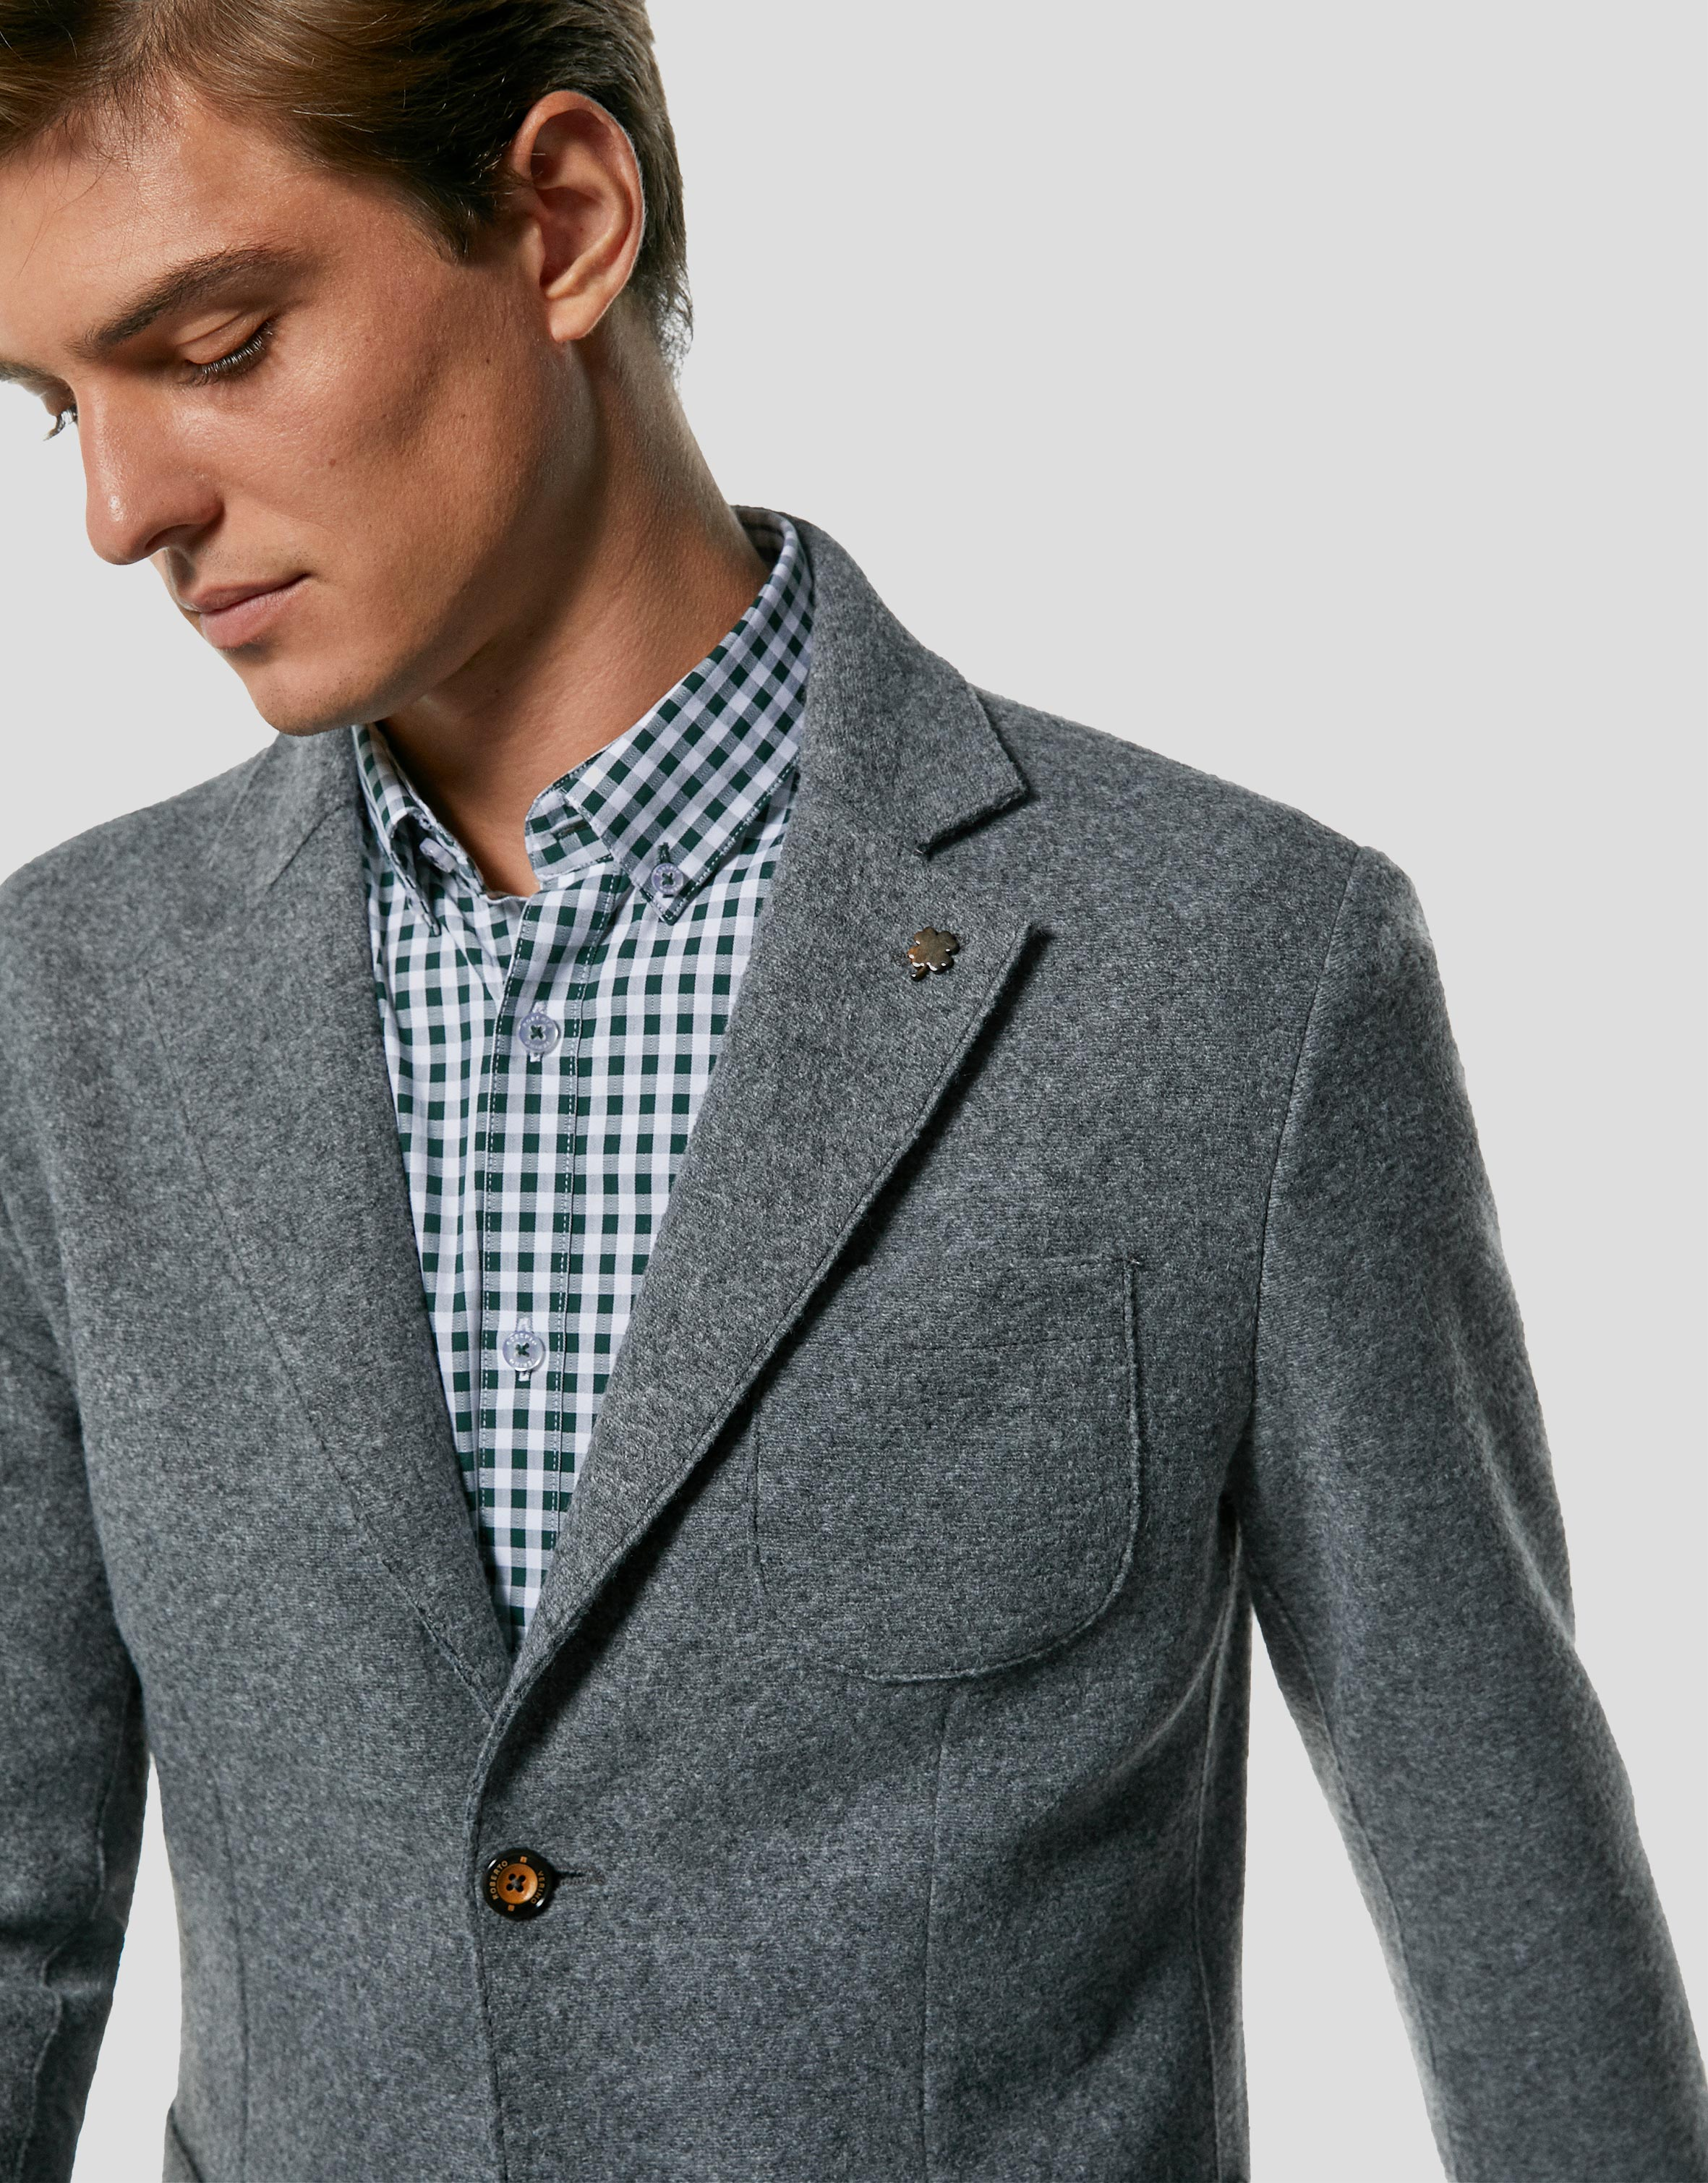 Gray melange wool sport jacket